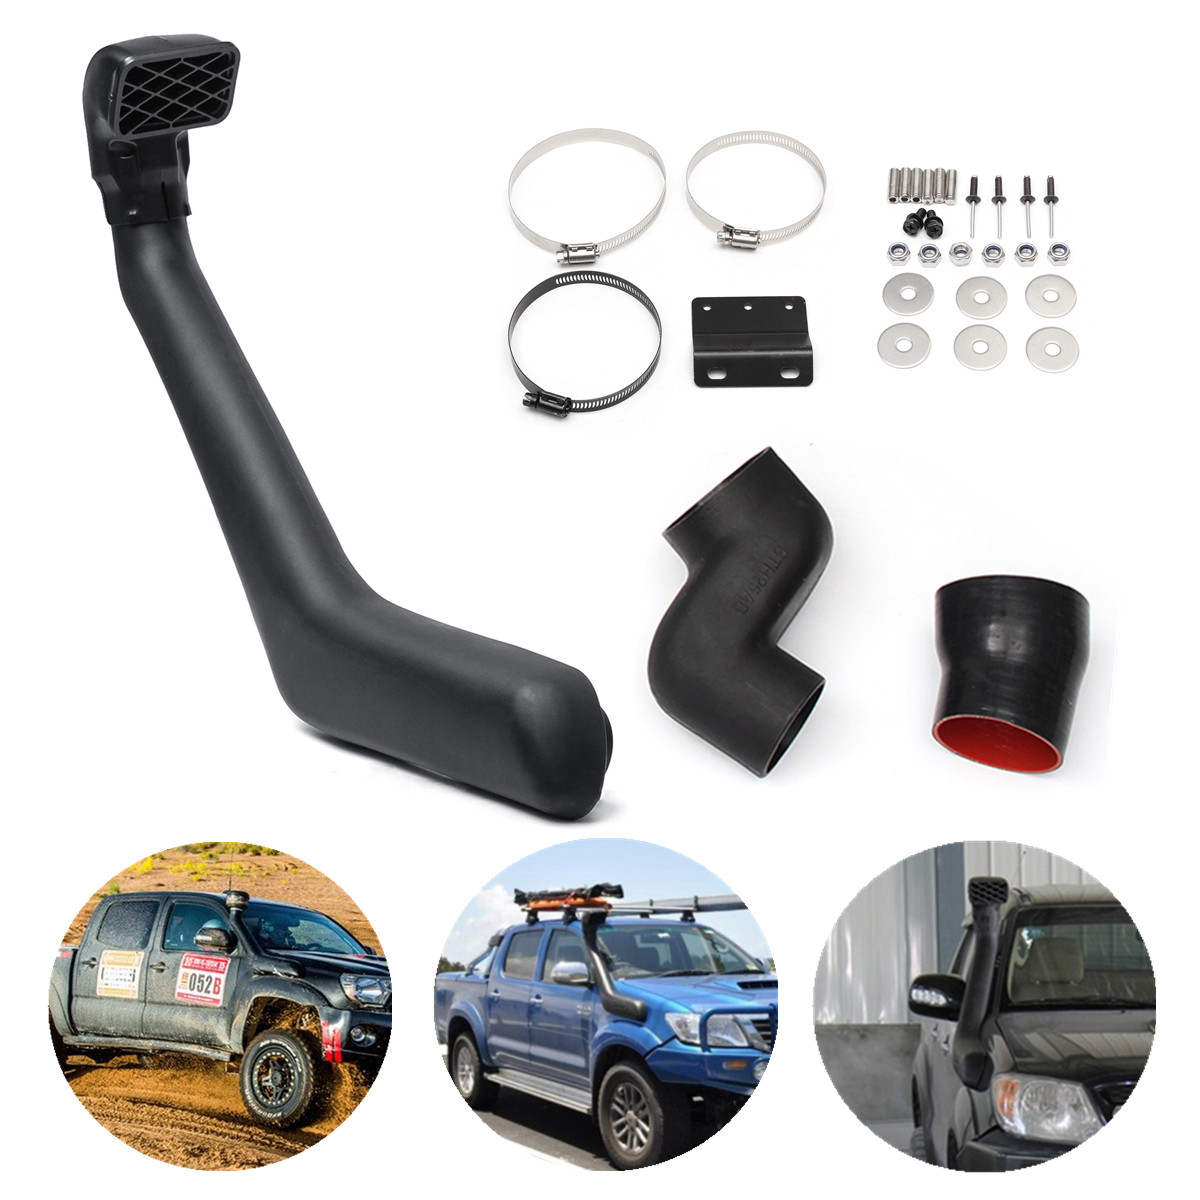 for Toyota for Hilux 25/26 SR/5 2005-2014 Snorkel Kit Petrol Diesel Air Raise Intake Drainage Outlets Increase Fuel Economy Life cnspeed air intake pipe kit for ford mustang 1989 1993 5 0l v8 cold air intake induction kits with 3 5 air filter yc100689